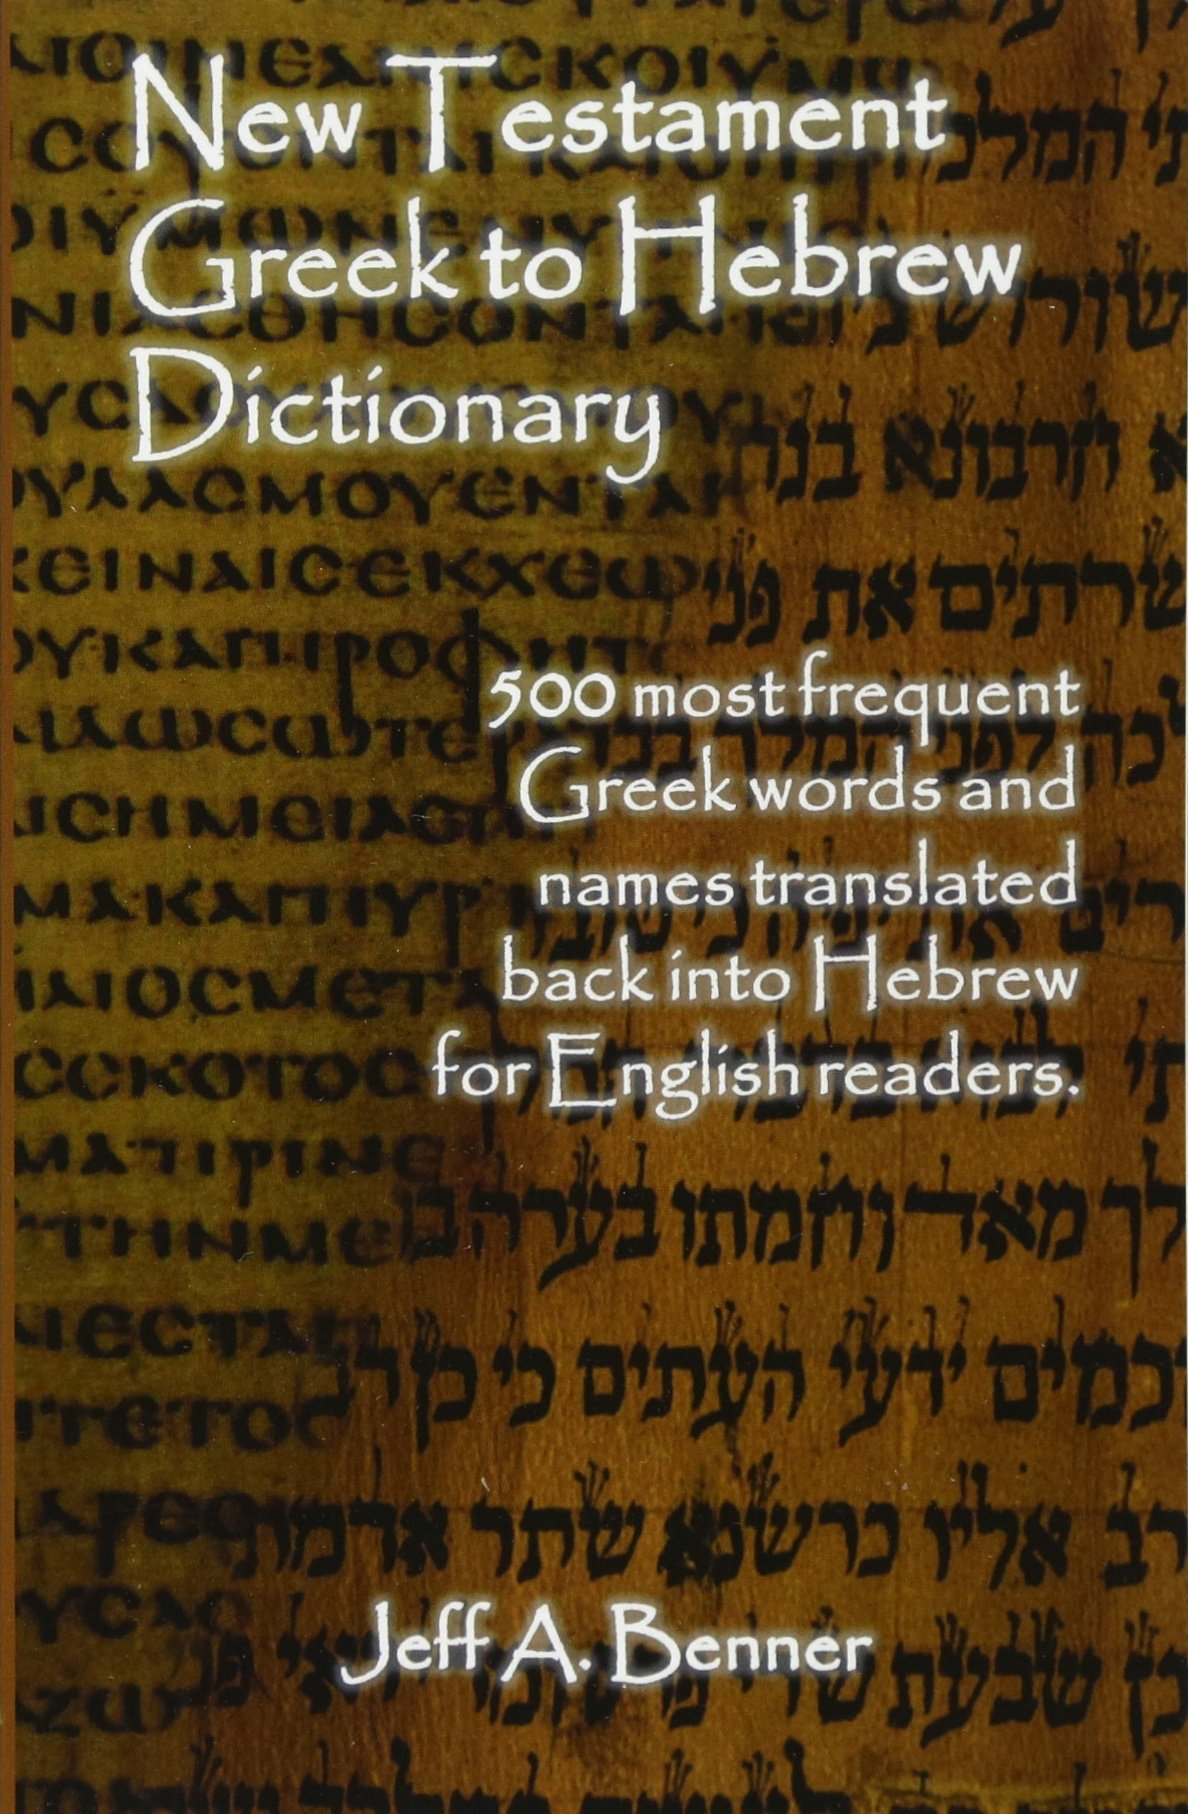 New Testament Greek To Hebrew Dictionary  Greek Words And Names Retranslated Back Into Hebrew For English Readers Jeff A Benner